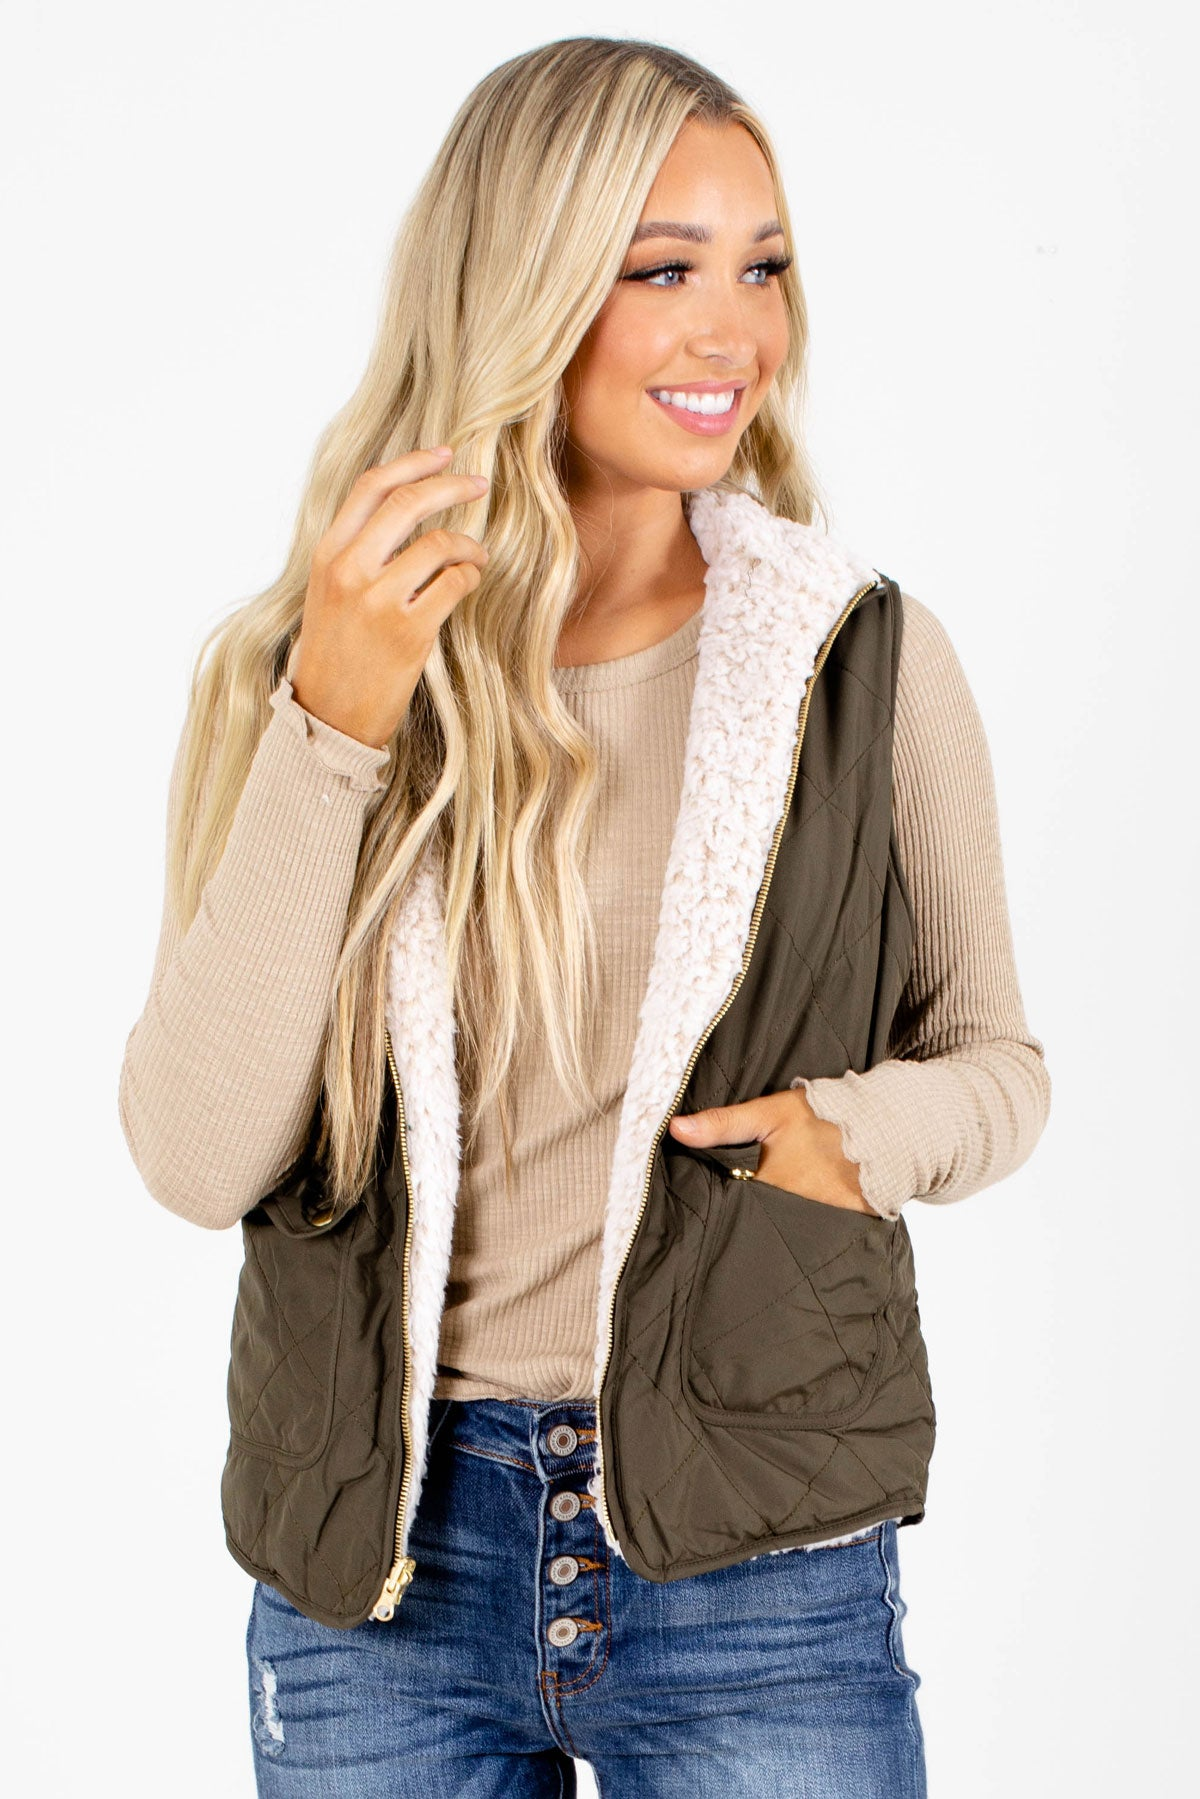 Olive High-Quality Quilted Material Boutique Vests for Women